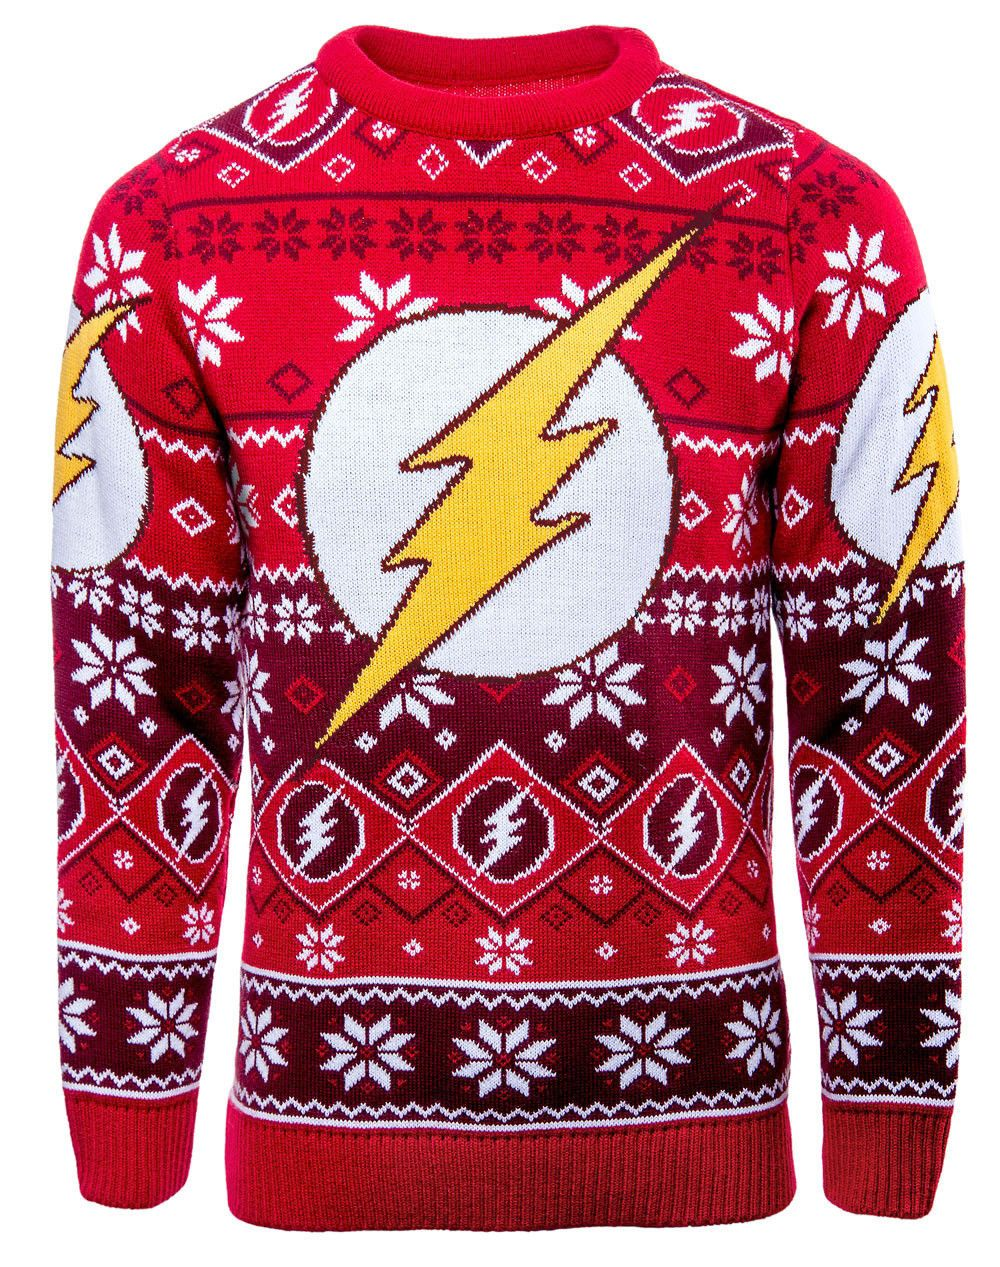 The Flash Run DC Comics Licensed Adult Pullover Hoodie S-3XL